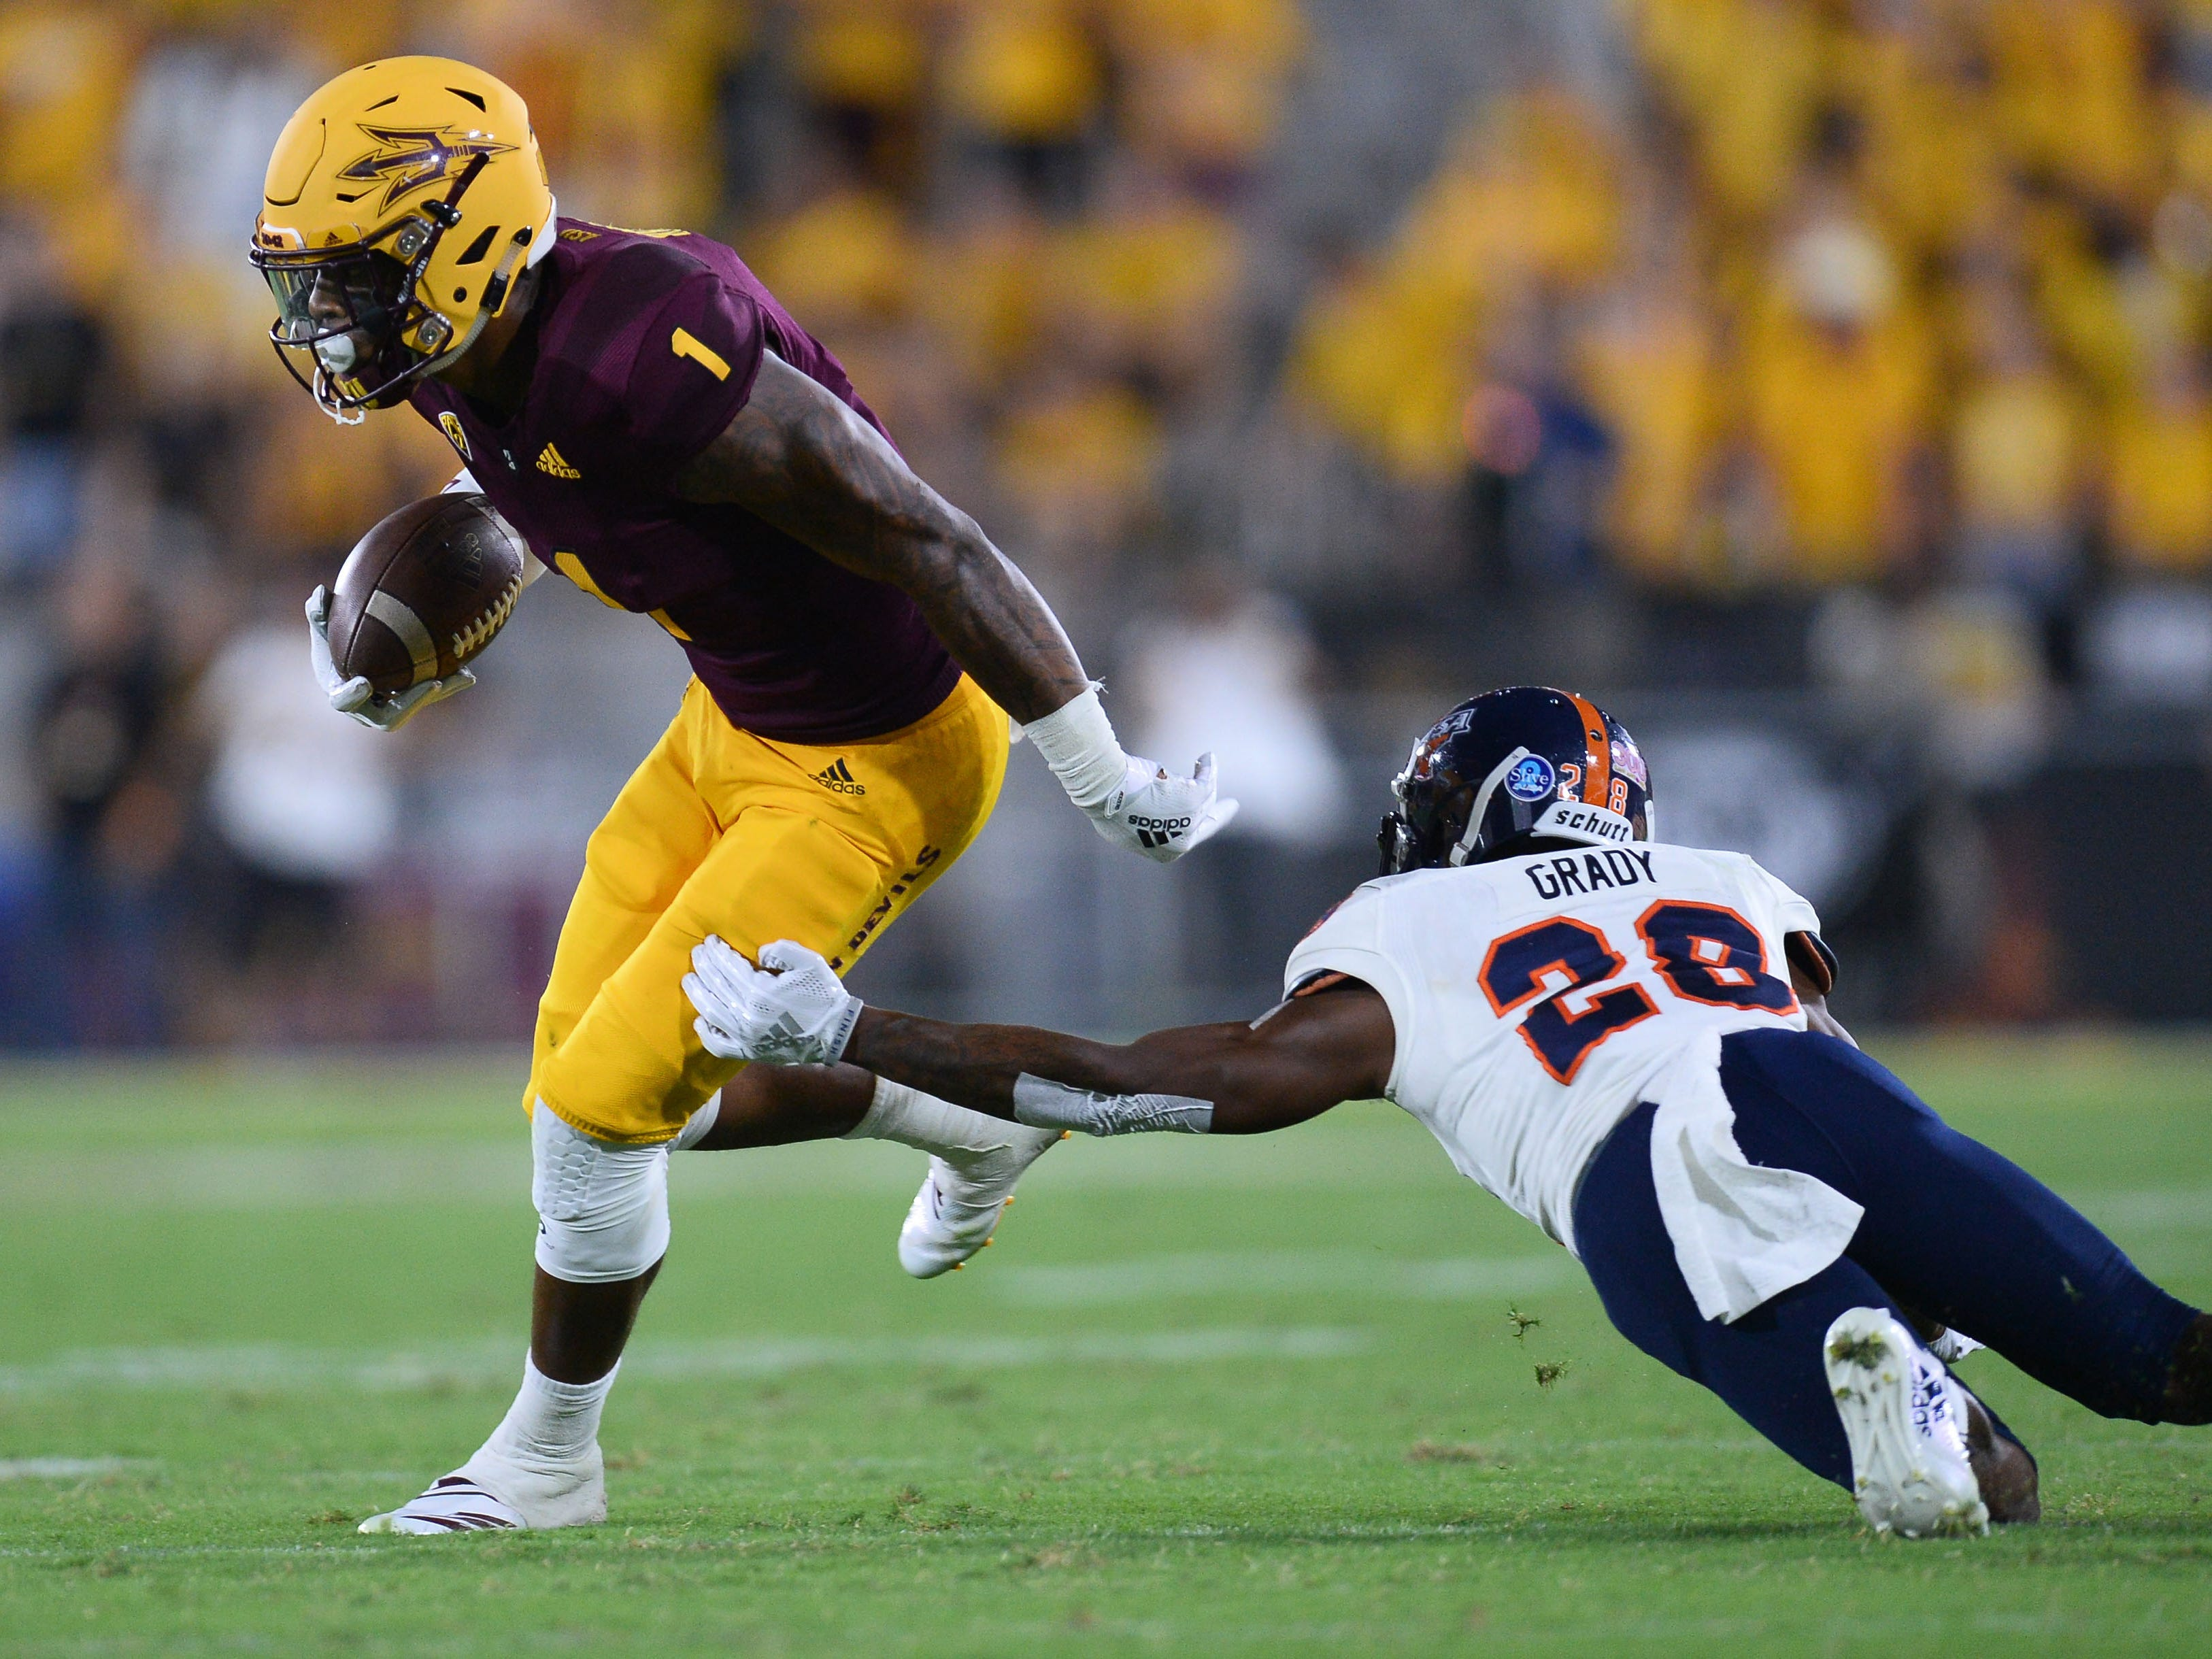 Sep 1, 2018; Tempe, AZ, USA; Arizona State Sun Devils wide receiver N'Keal Harry (1) slips by the tackle of UTSA Roadrunners cornerback Cassius Grady (28) en route to a touchdown during the second half at Sun Devil Stadium.